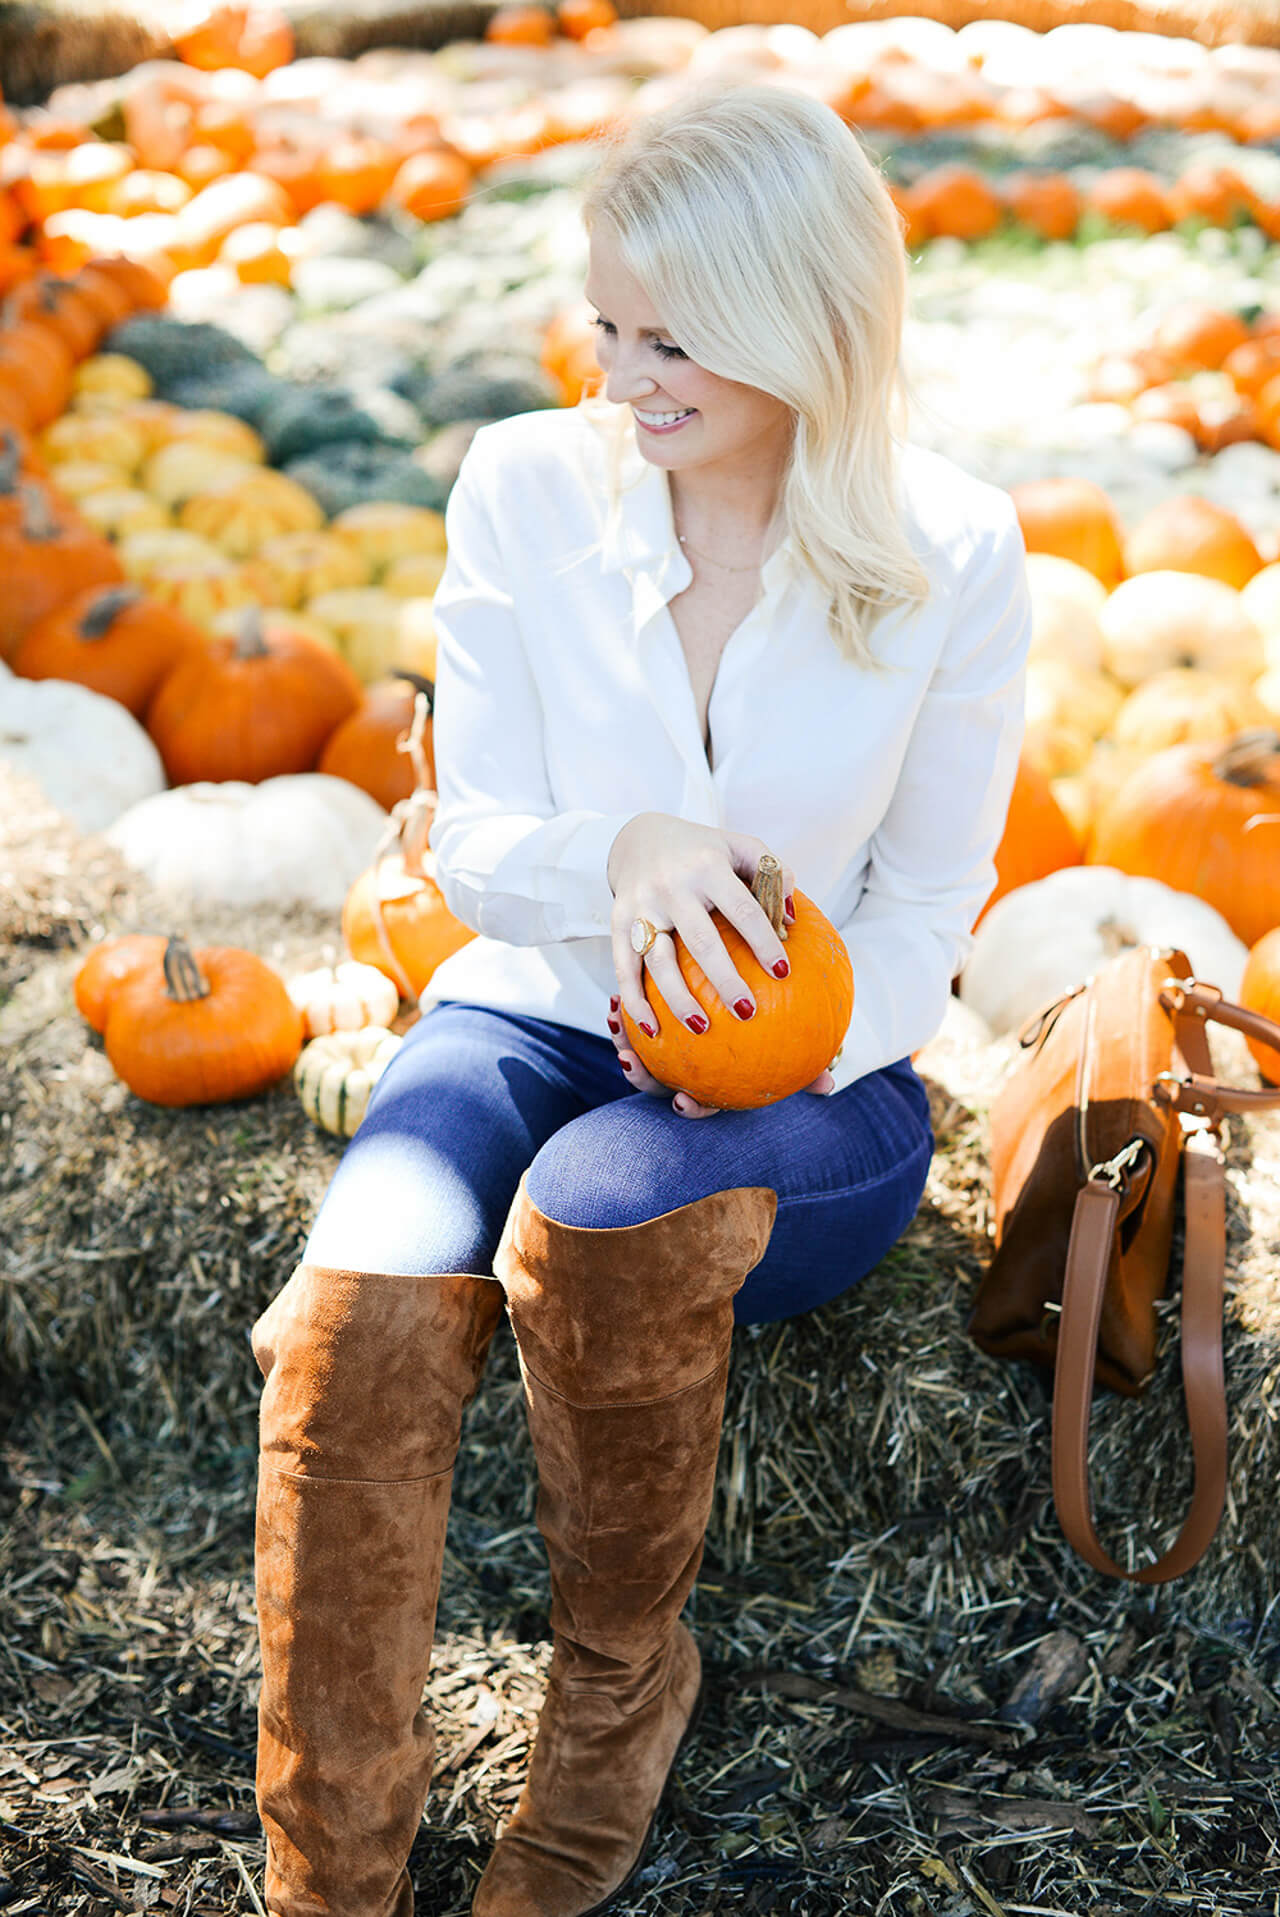 Merrit Beck of The Style Scribe shares her perfect day in Dallas, TX. - M Loves M @marmar